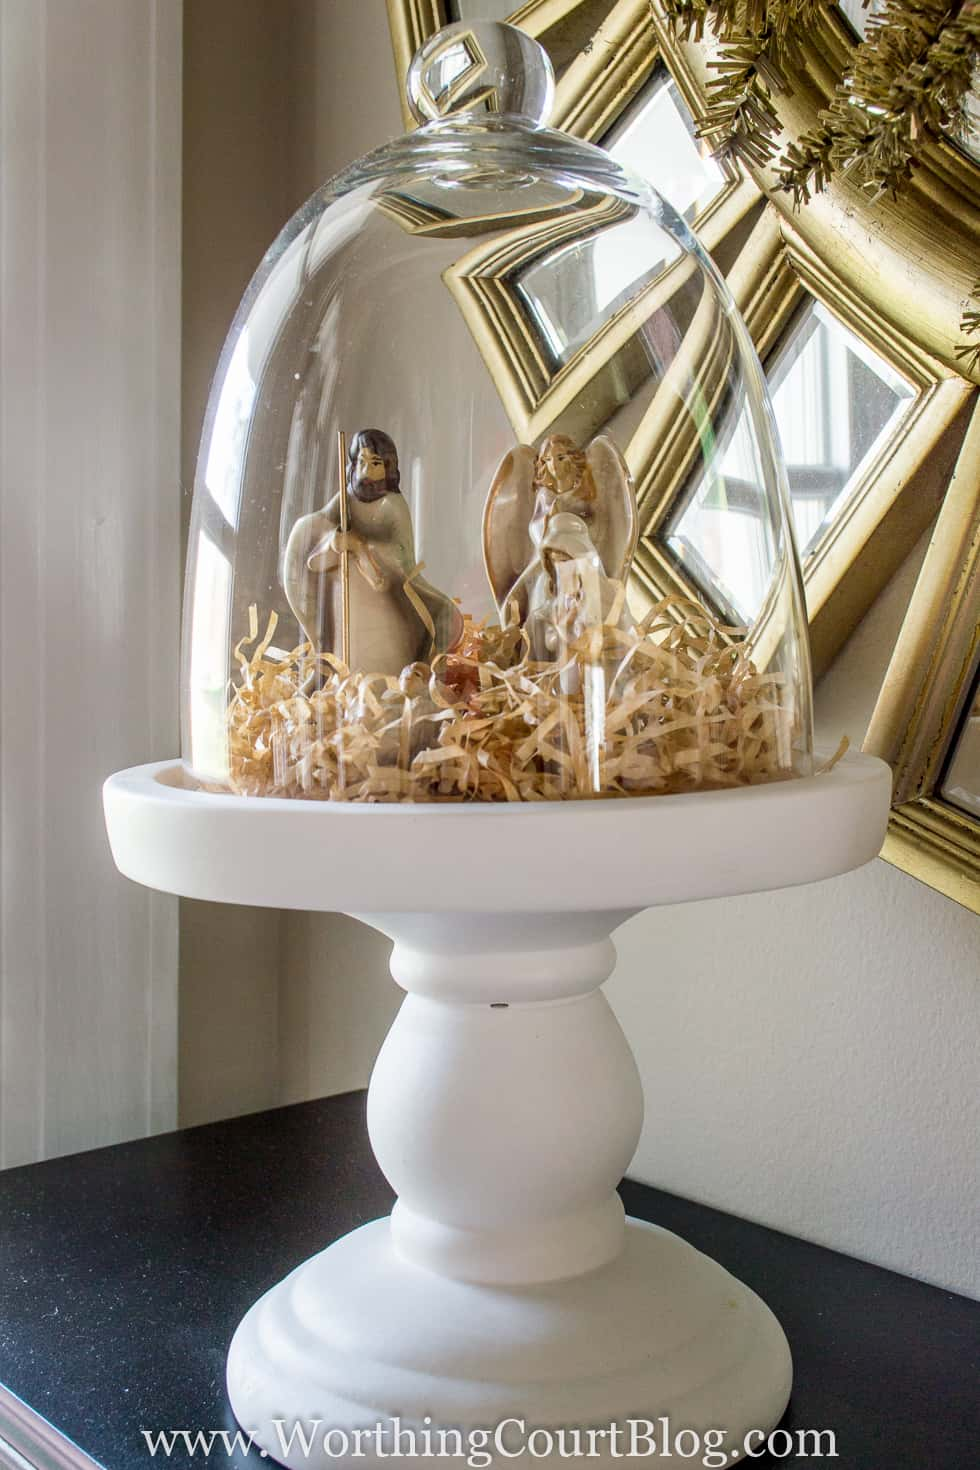 A tiny nativity set is very simply displayed under a glass cloche